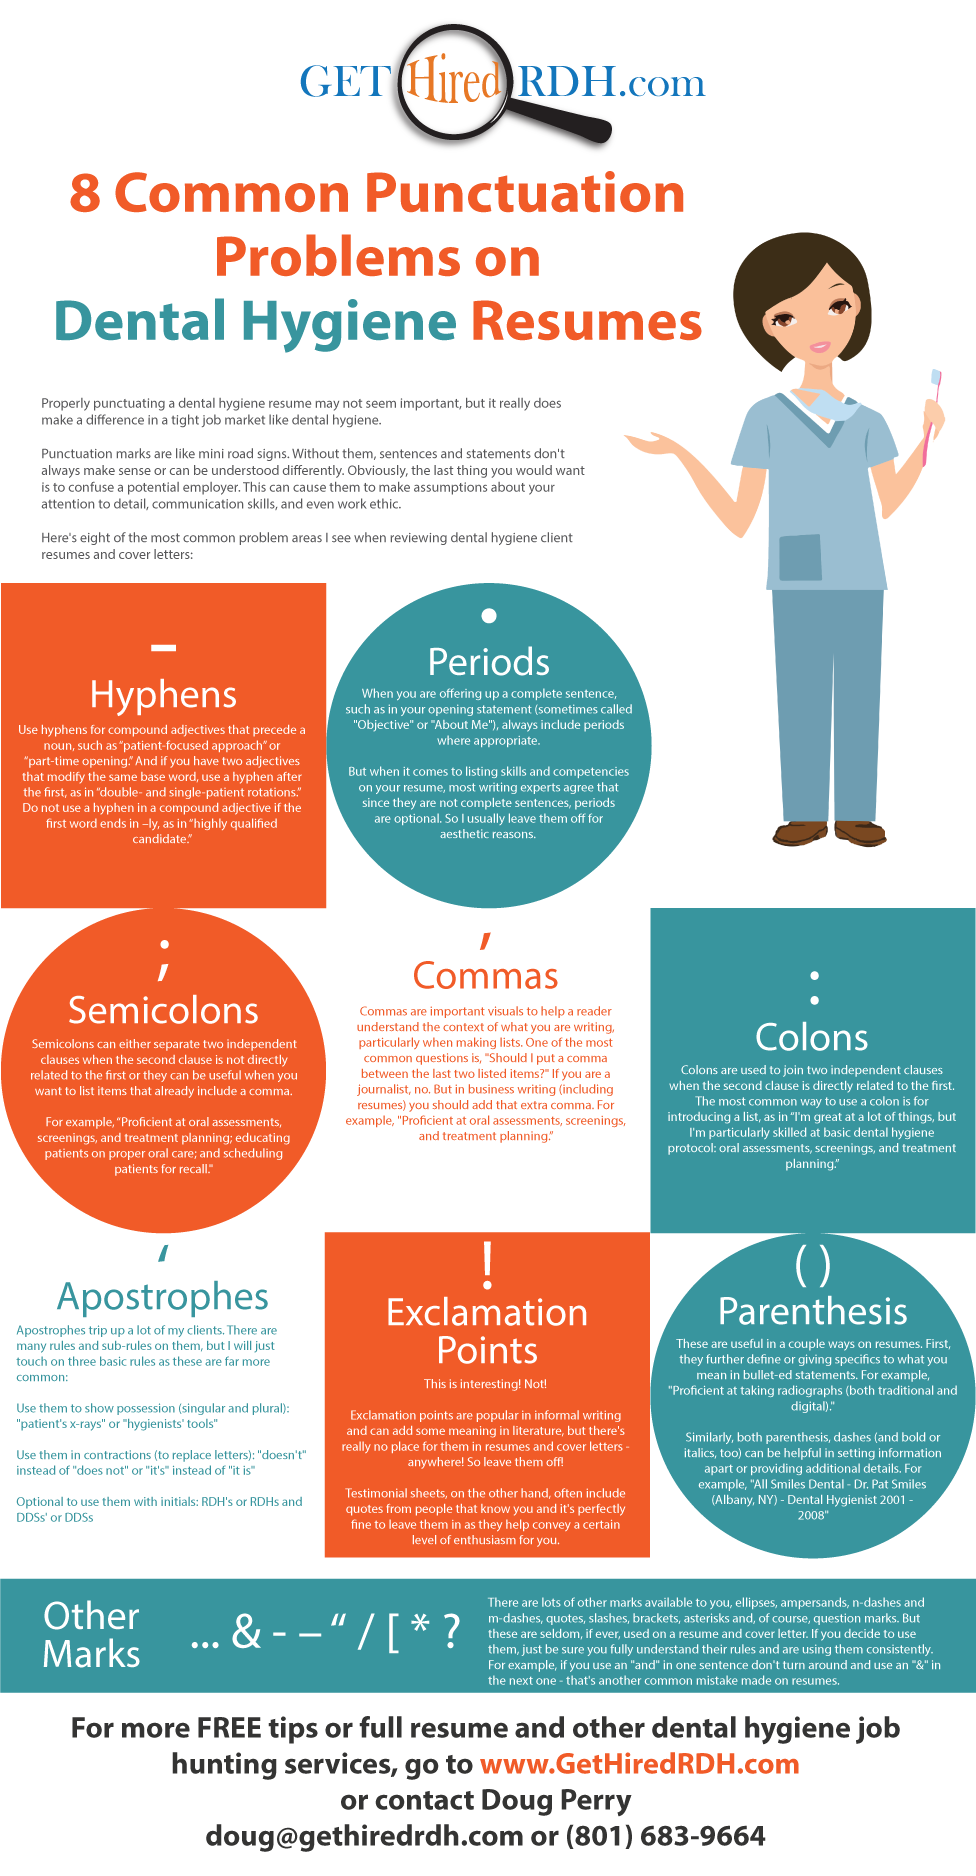 8 common punctuation problems on dental hygiene resumes